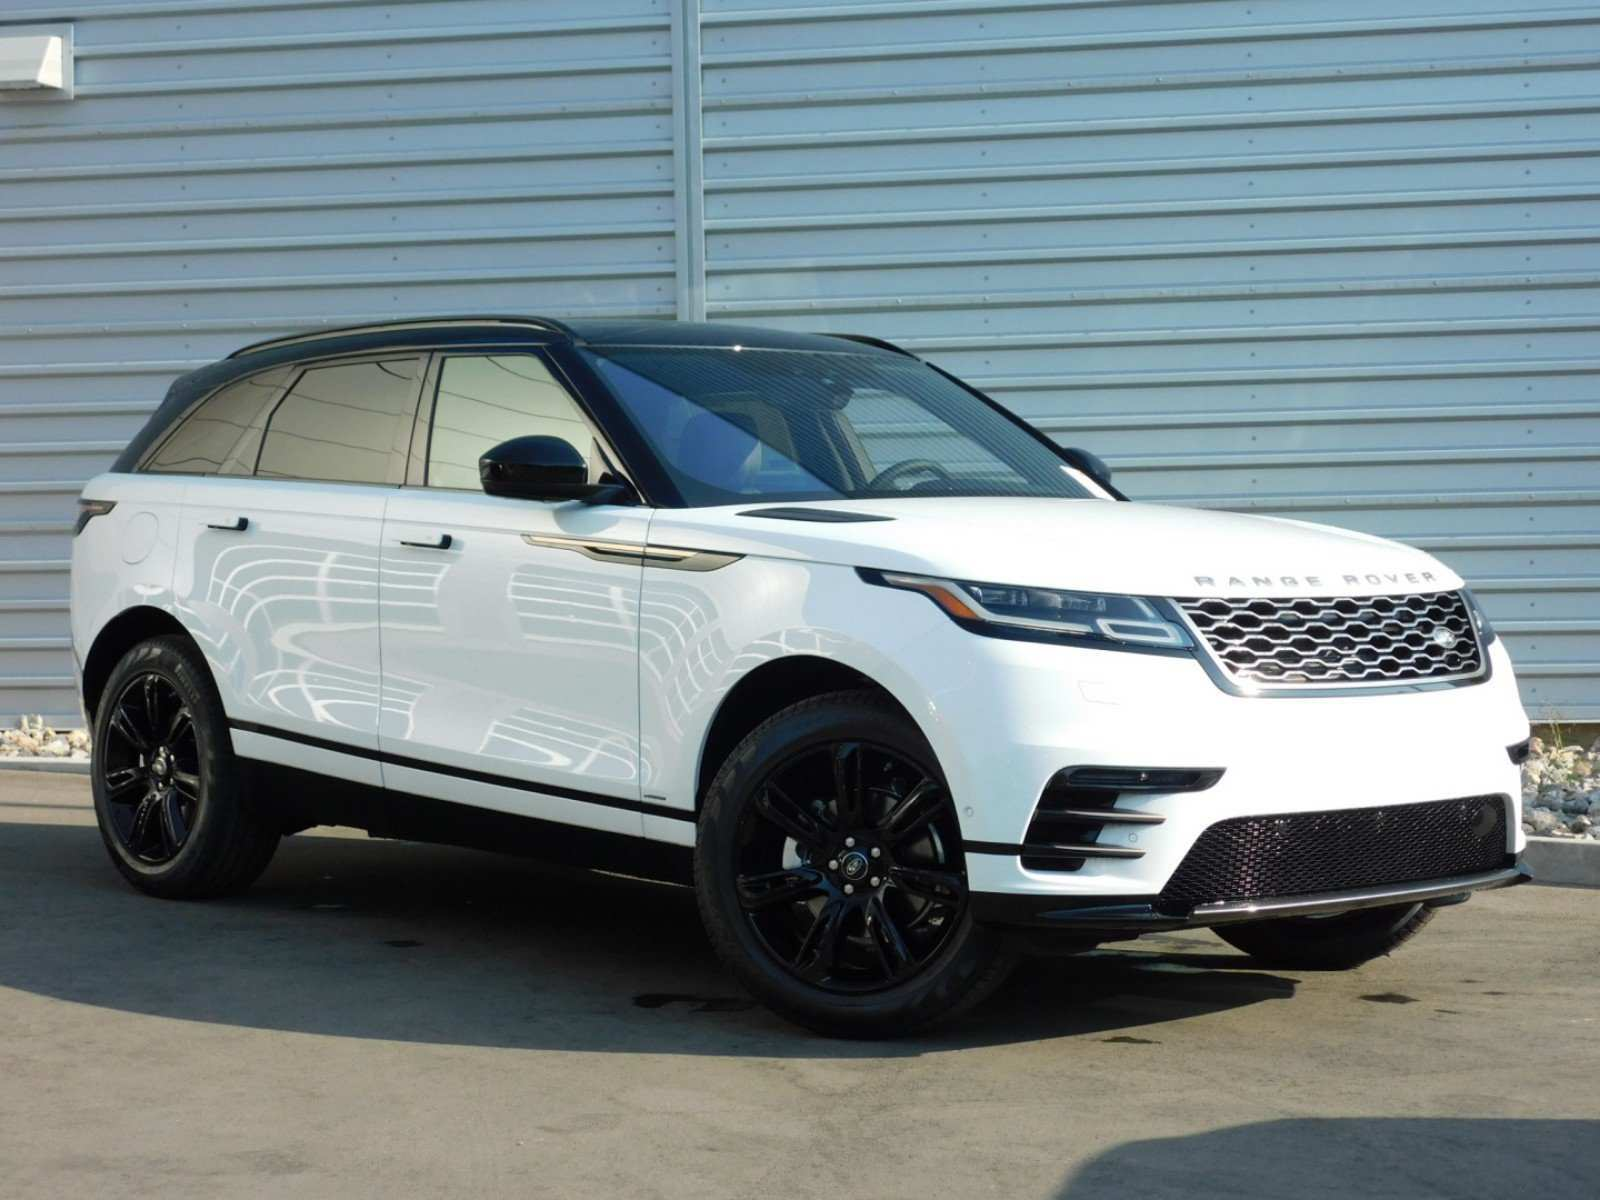 25 Gallery of New Land Rover 2019 Review with New Land Rover 2019